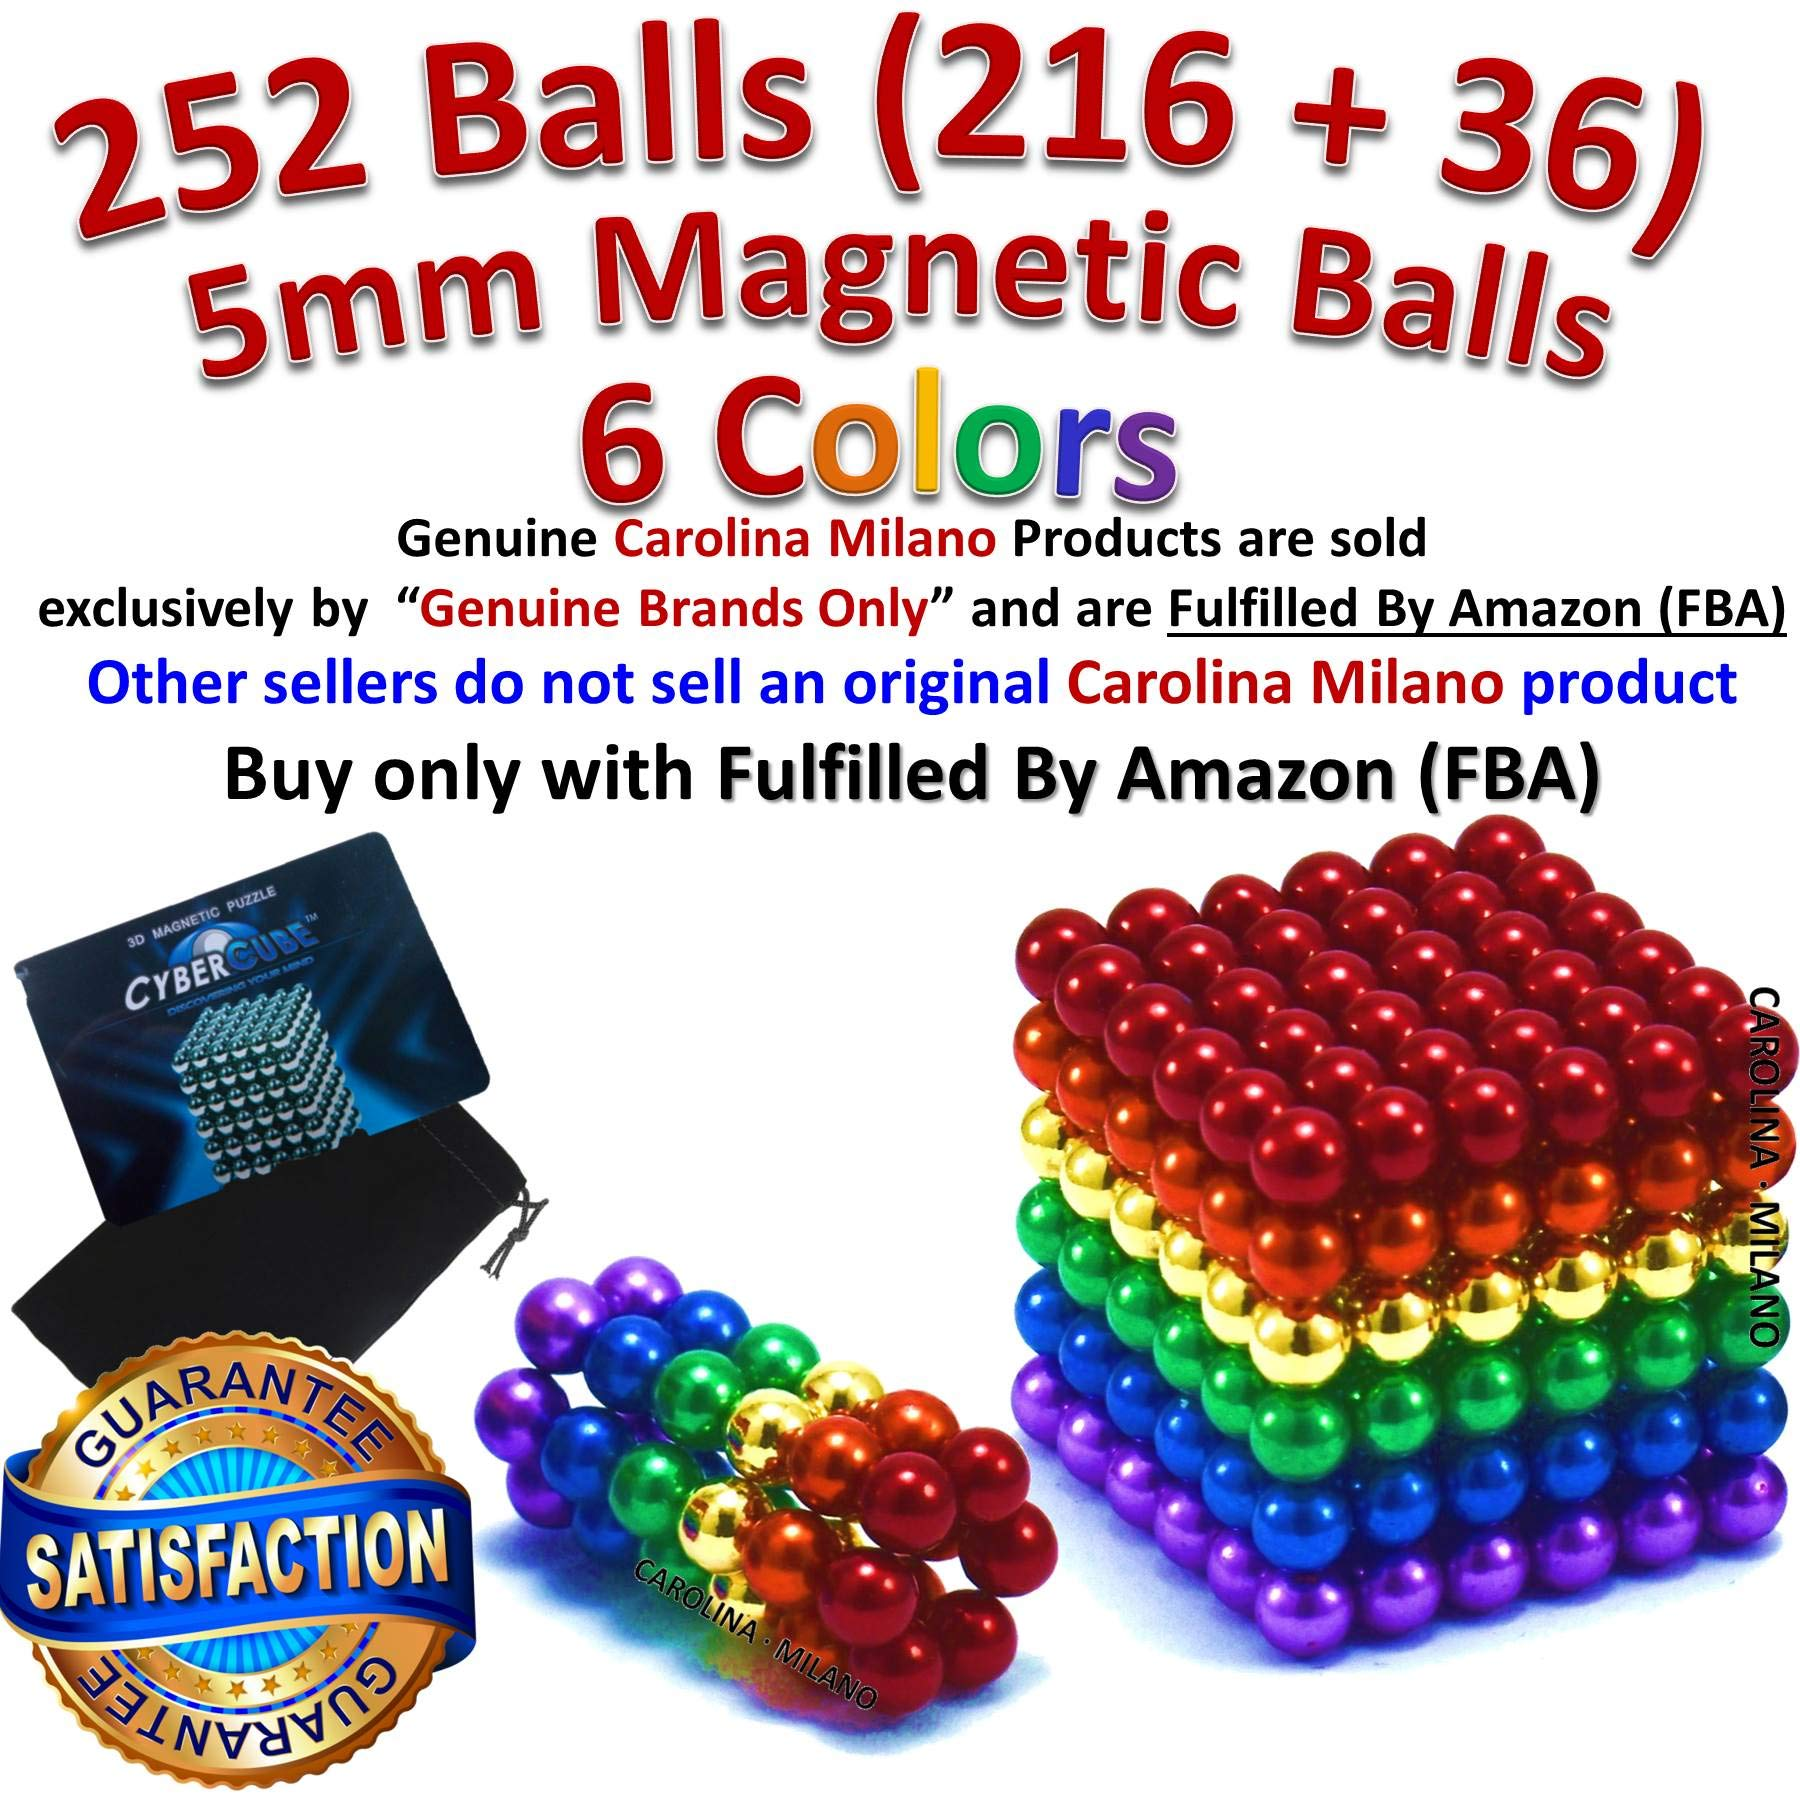 6 Rainbow Colors 252 pieces 216pcs + 36pcs 5mm Magnetic Balls Building Blocks Sculpture Magnets Educational game Magnet Toy Intelligence Development Stress Relief Imagination gift Magnetic Balls 5mm by CAROLINA MILANO